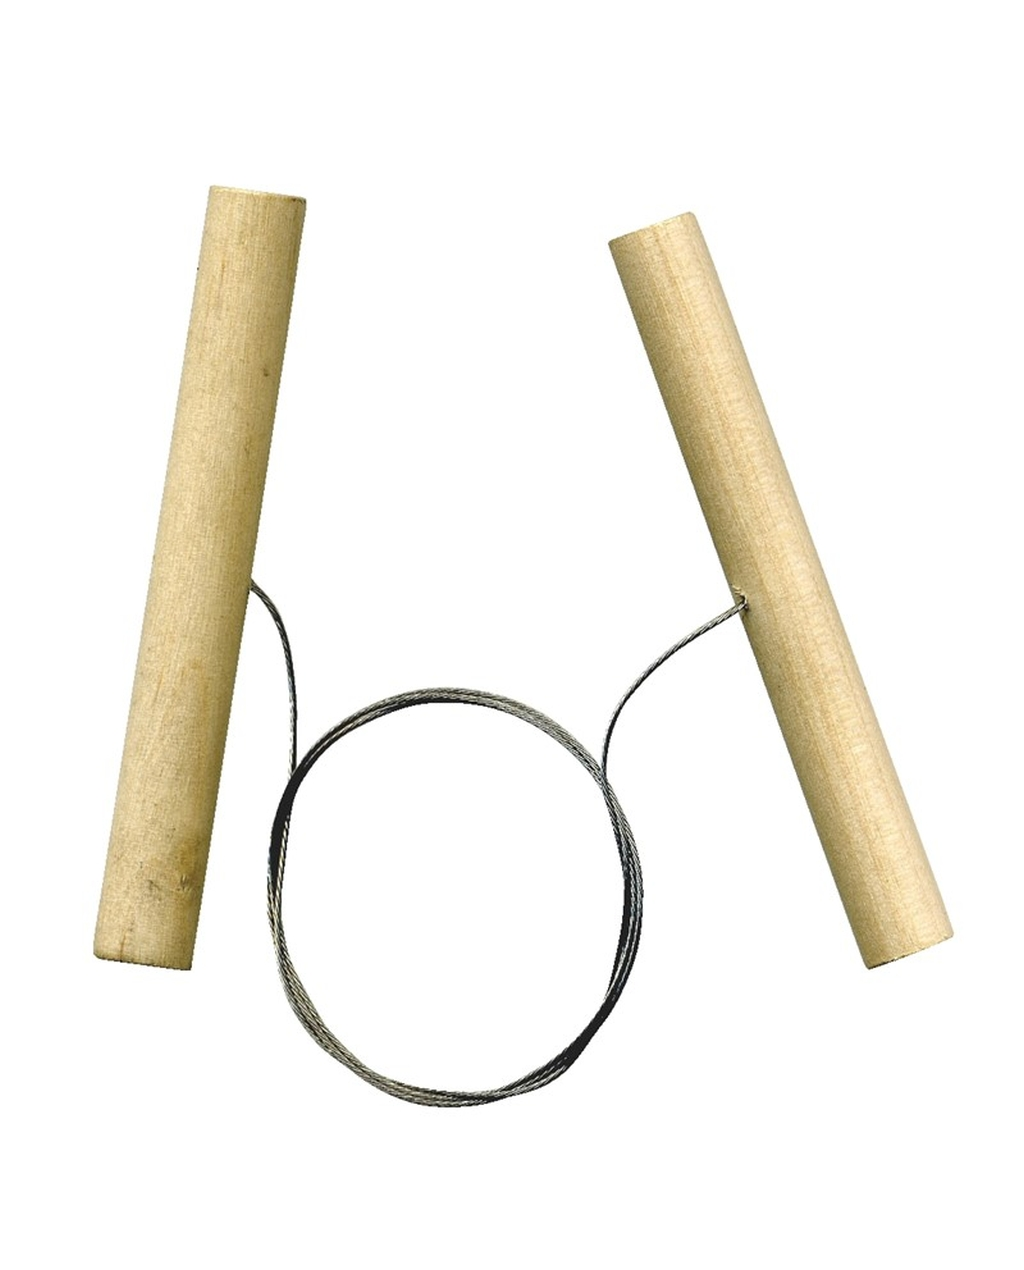 Clay Wedging Wire